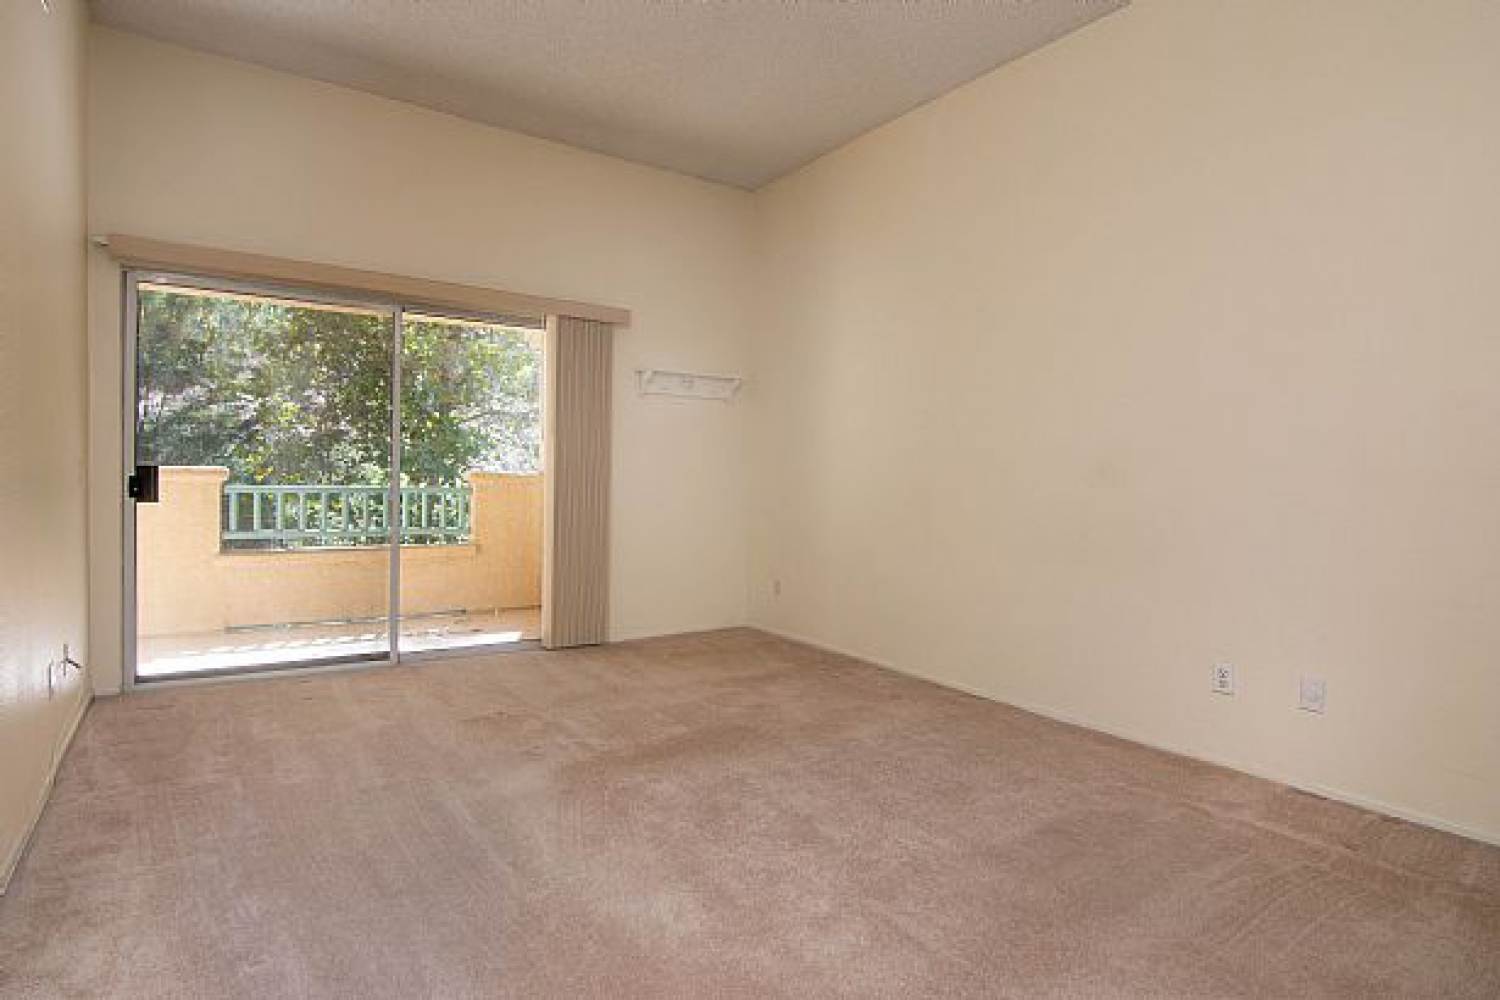 23930 Arroyo Park Dr | Photo 22